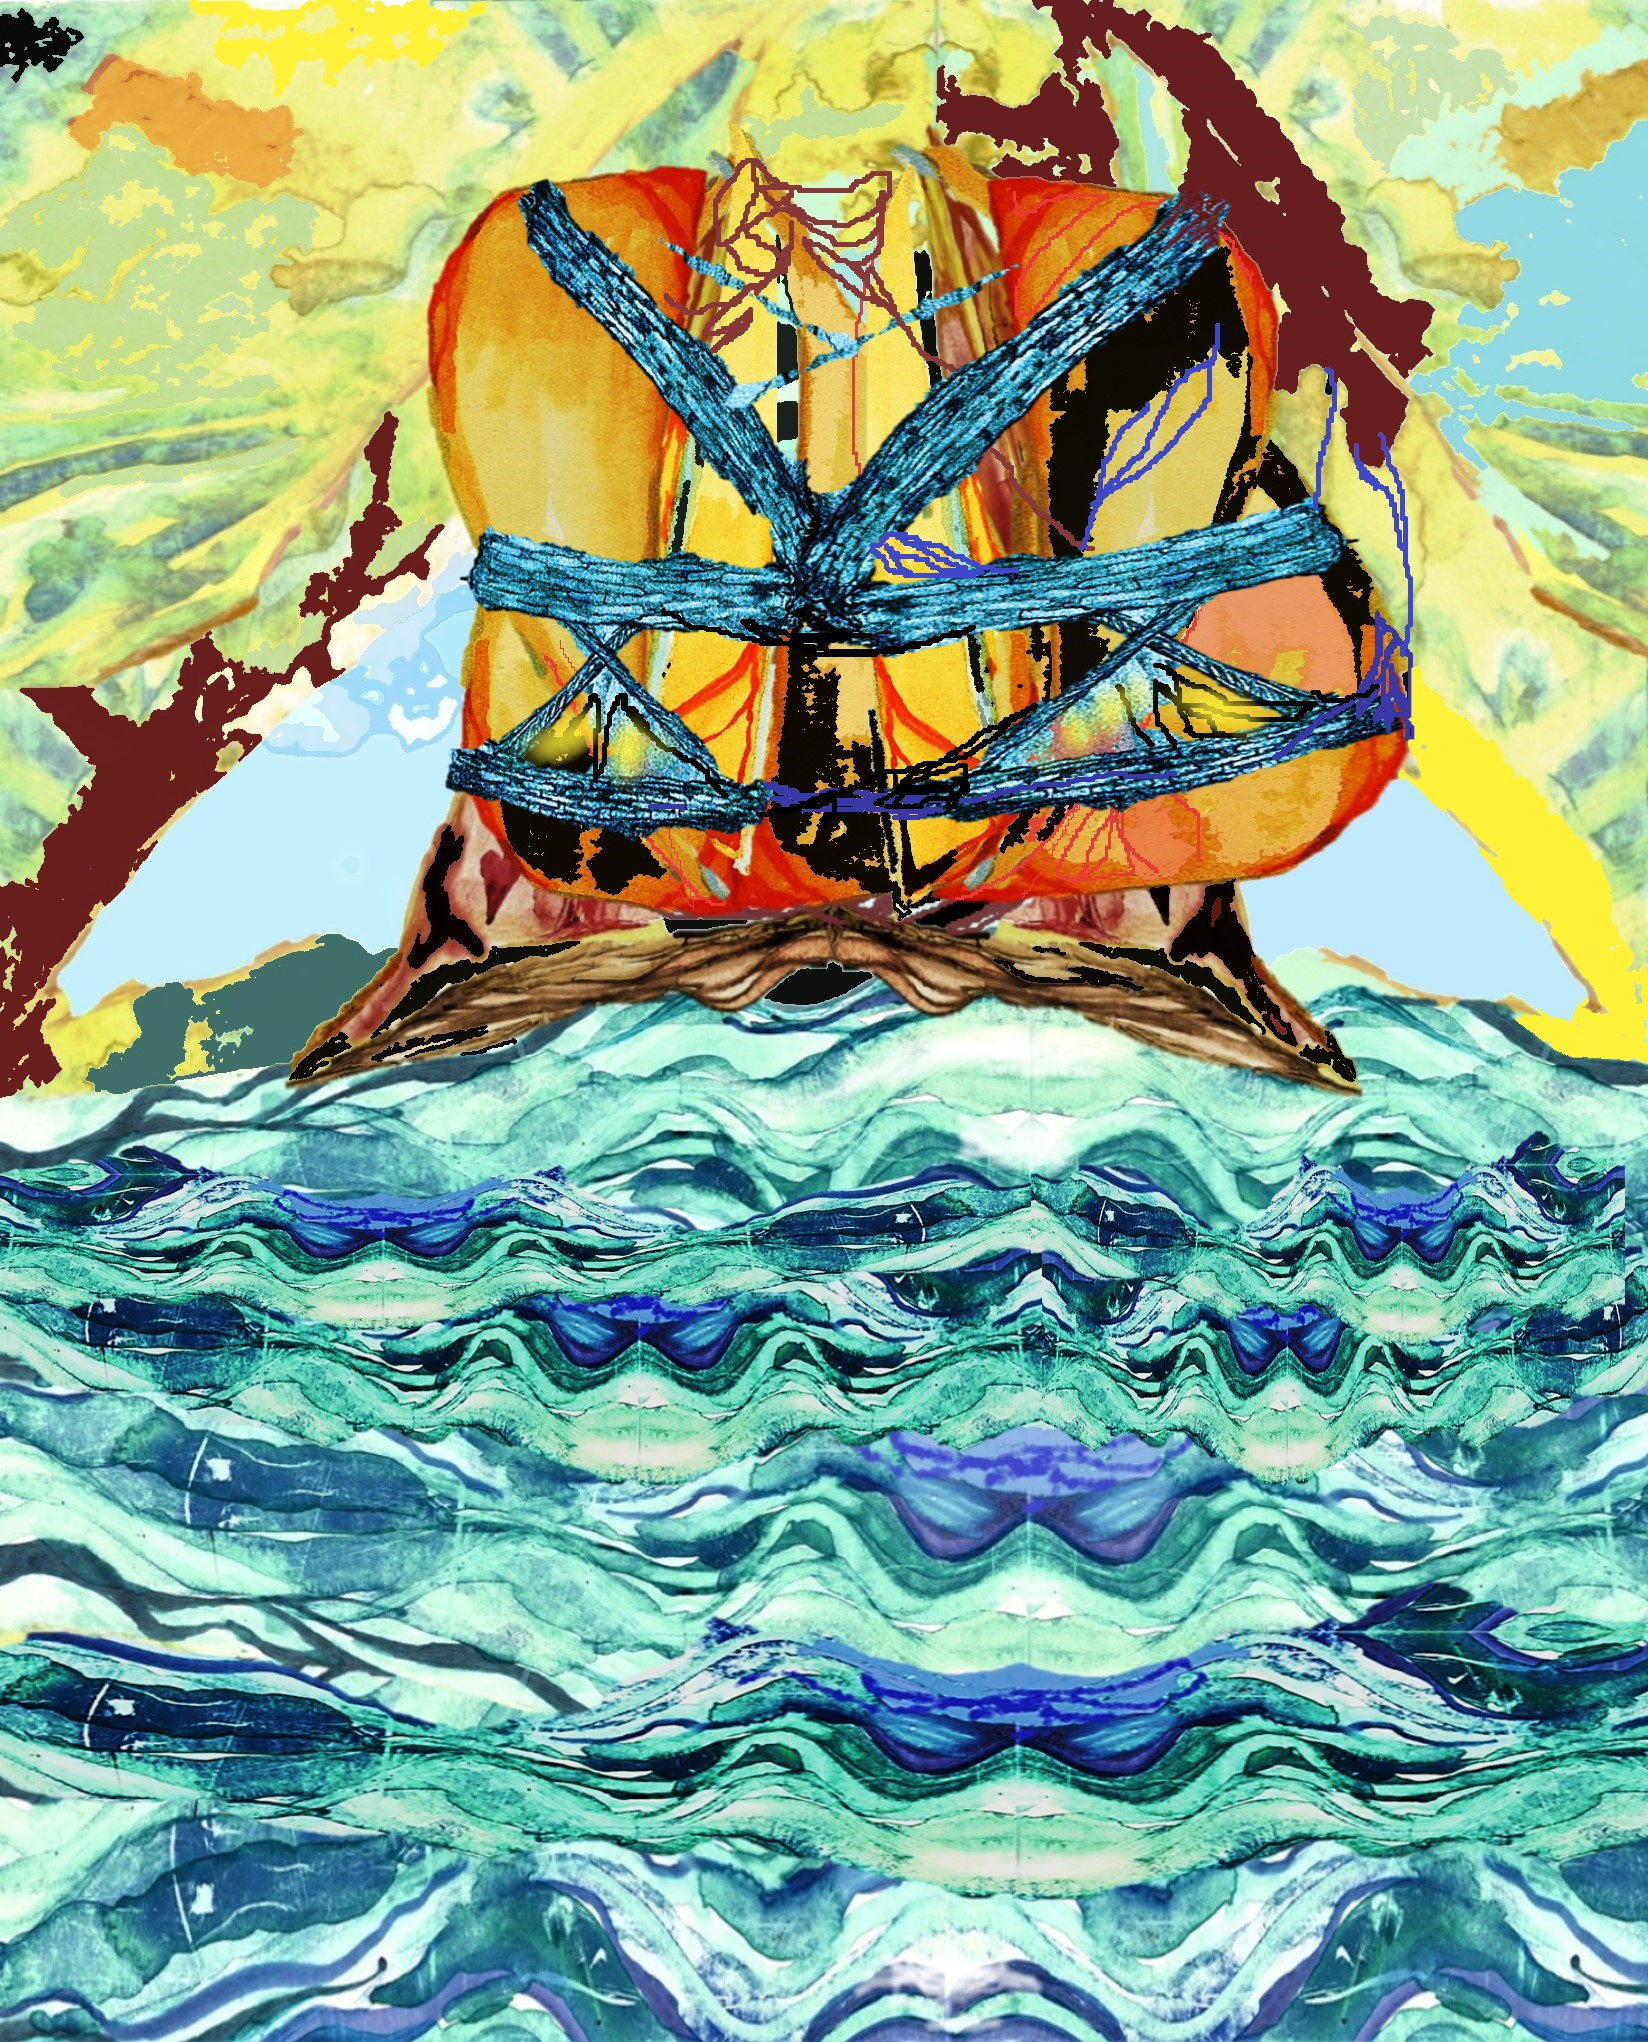 Sailboats-Tangled-Sailboats-